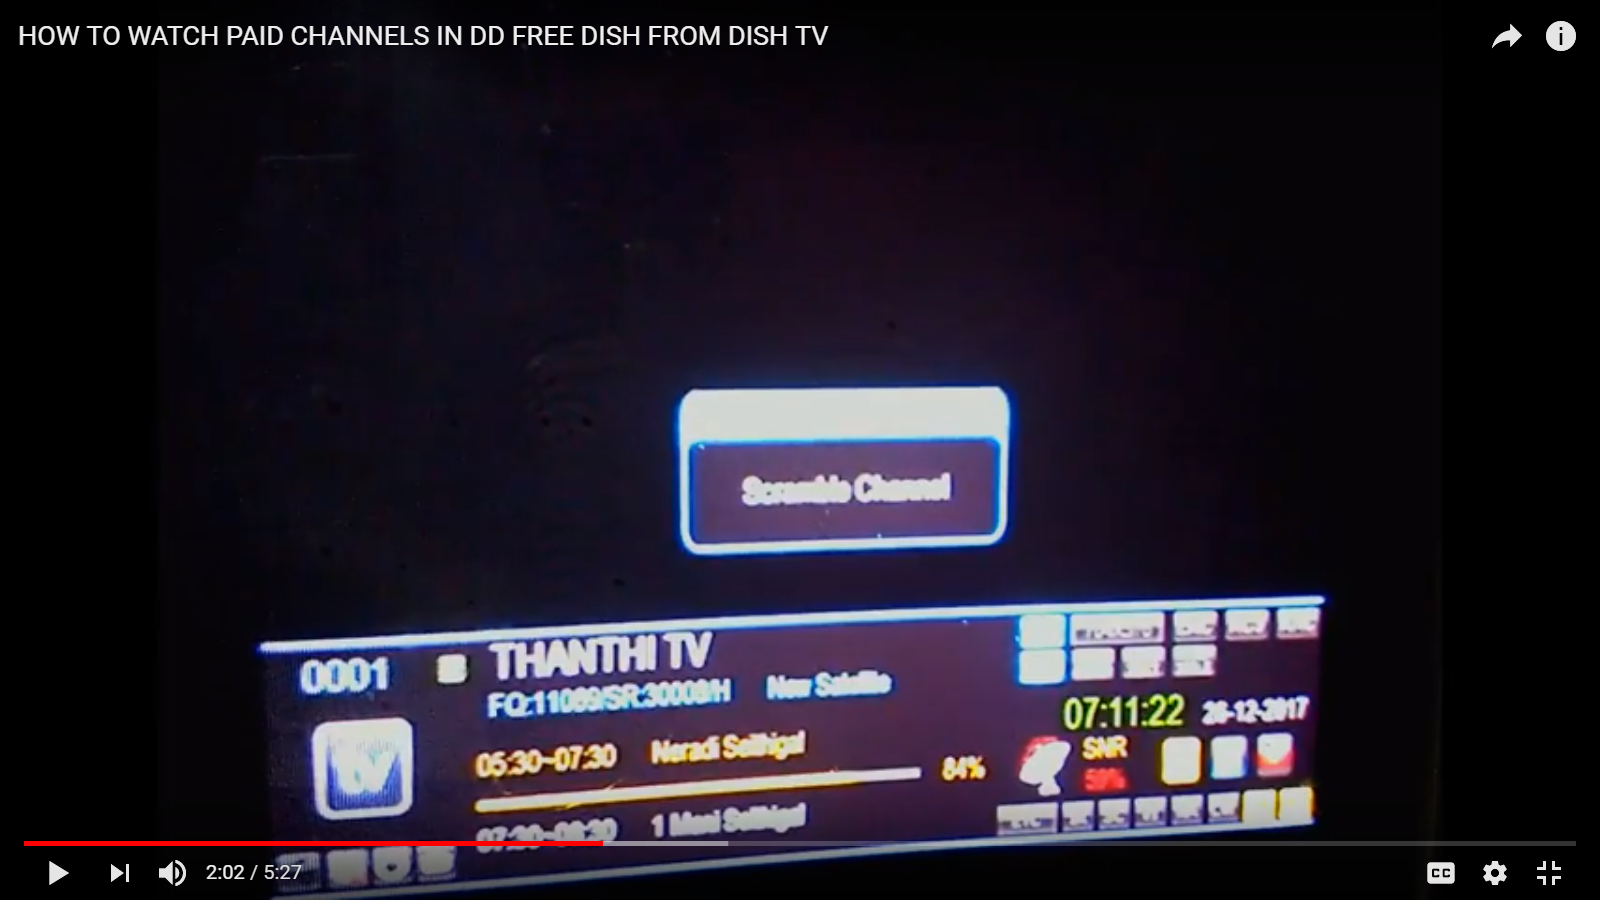 HOW TO WATCH SCRAMBLED OR ENCRYPTED CHANNELS IN DD FREE DISH,DISH TV